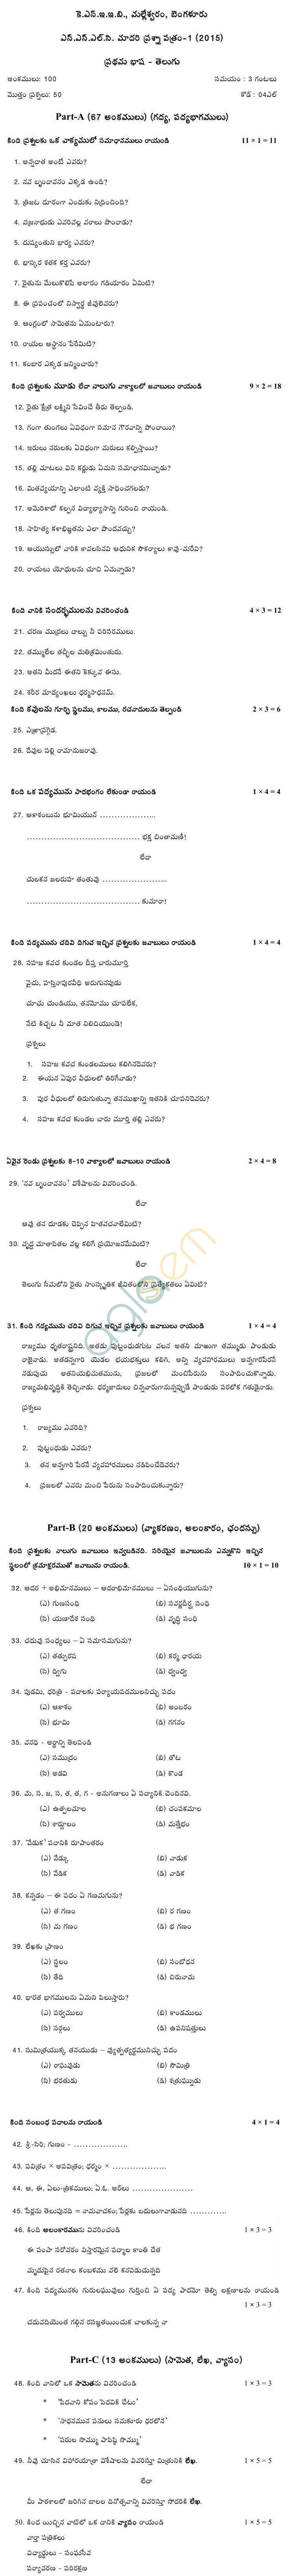 Karnataka Board SSLC Model Question Papers 2015 for Telugu